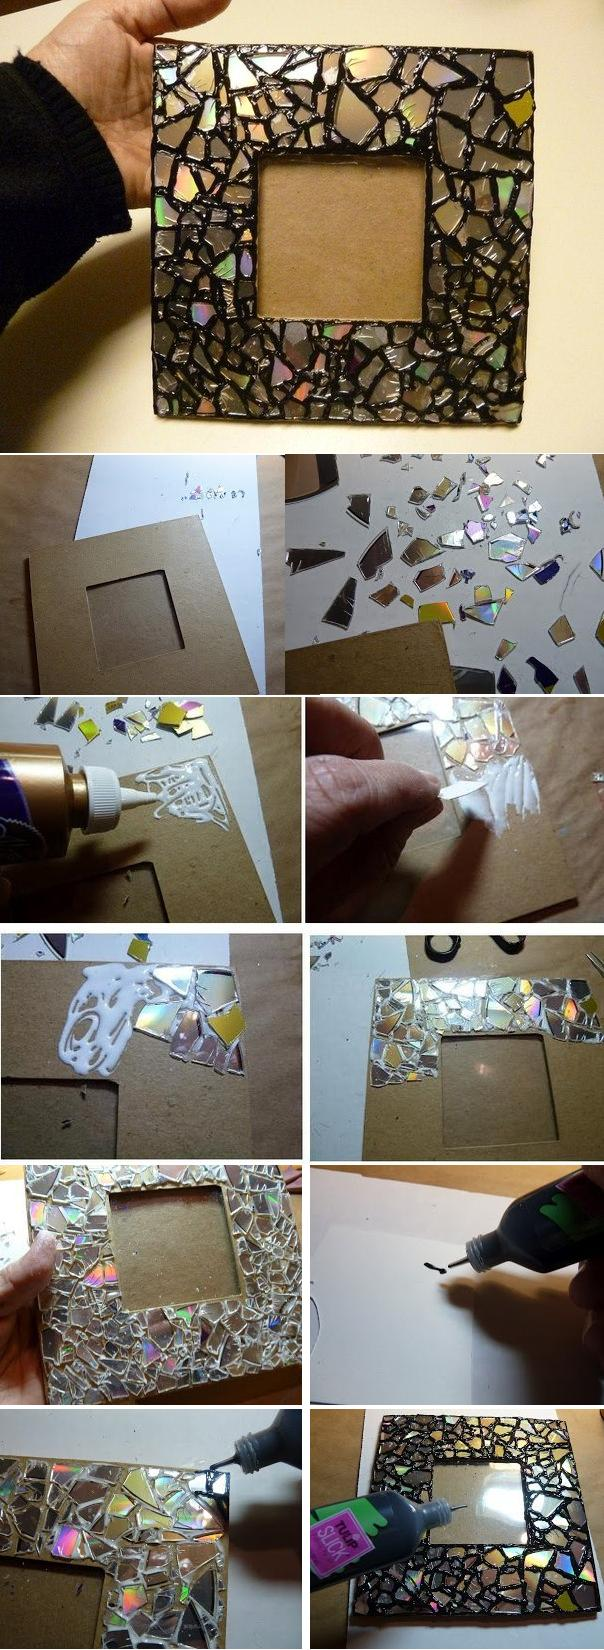 DIY-Old-CD-Mosaic-Mirror-Frame